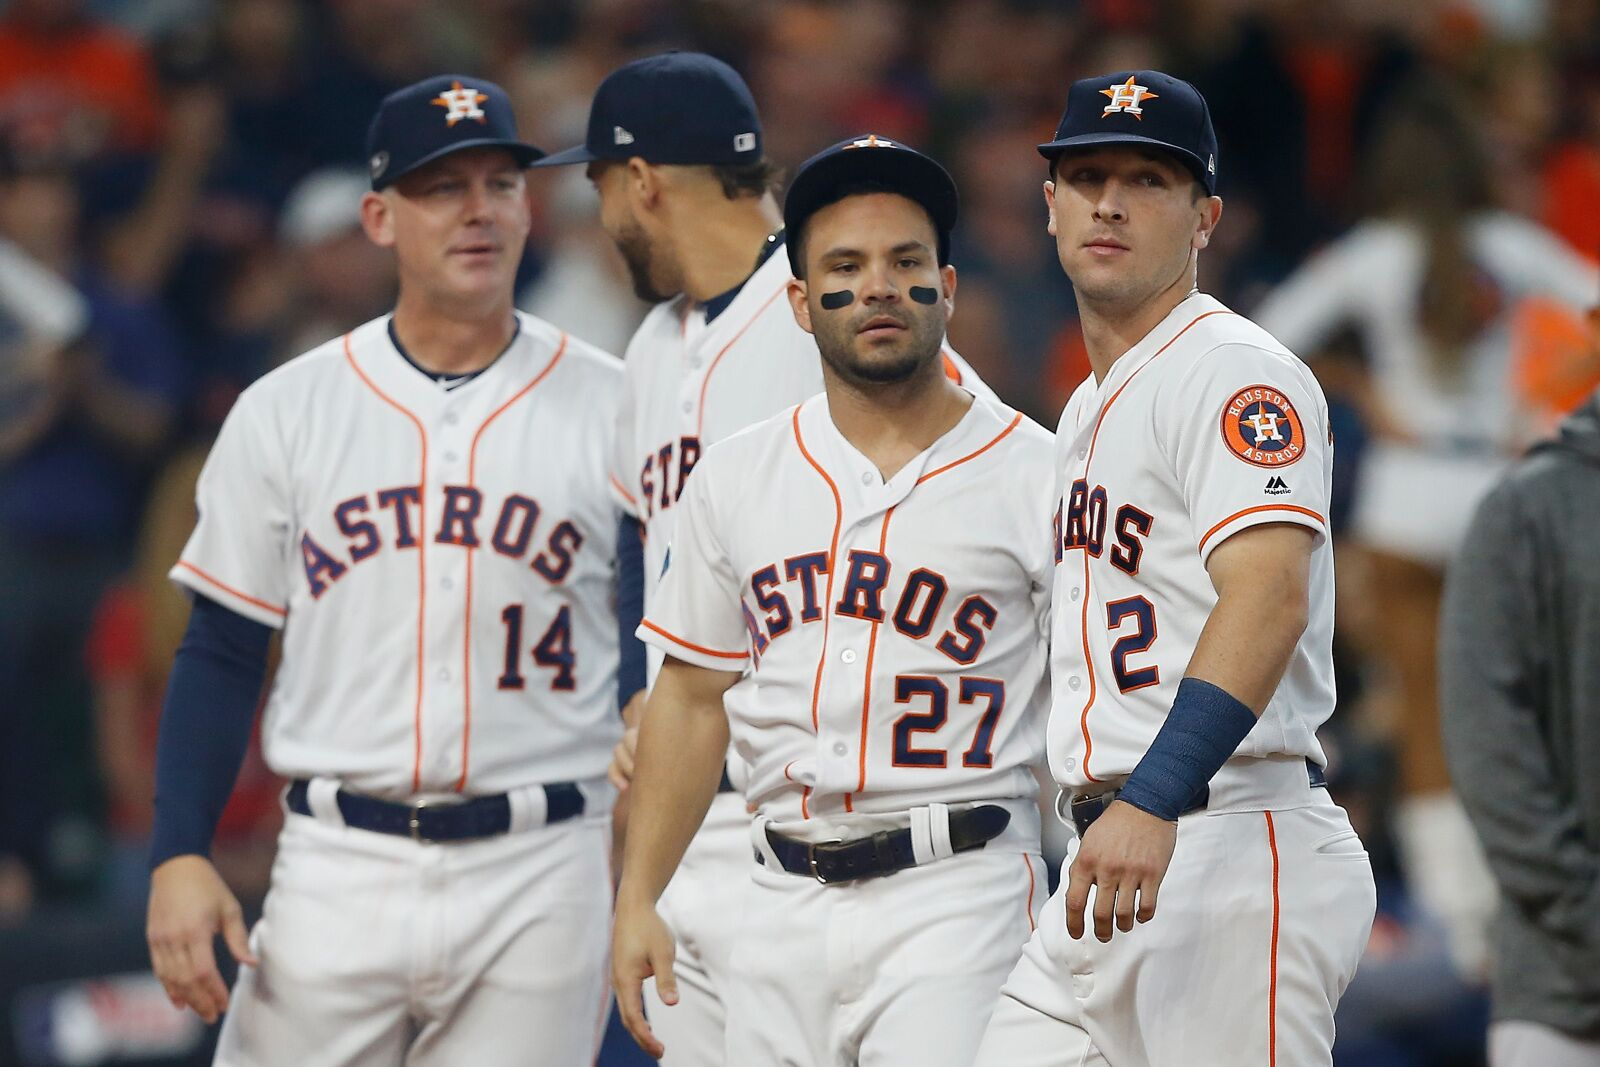 Astros 2019 >> Astros Opening Day 25 Man Roster Announced For 2019